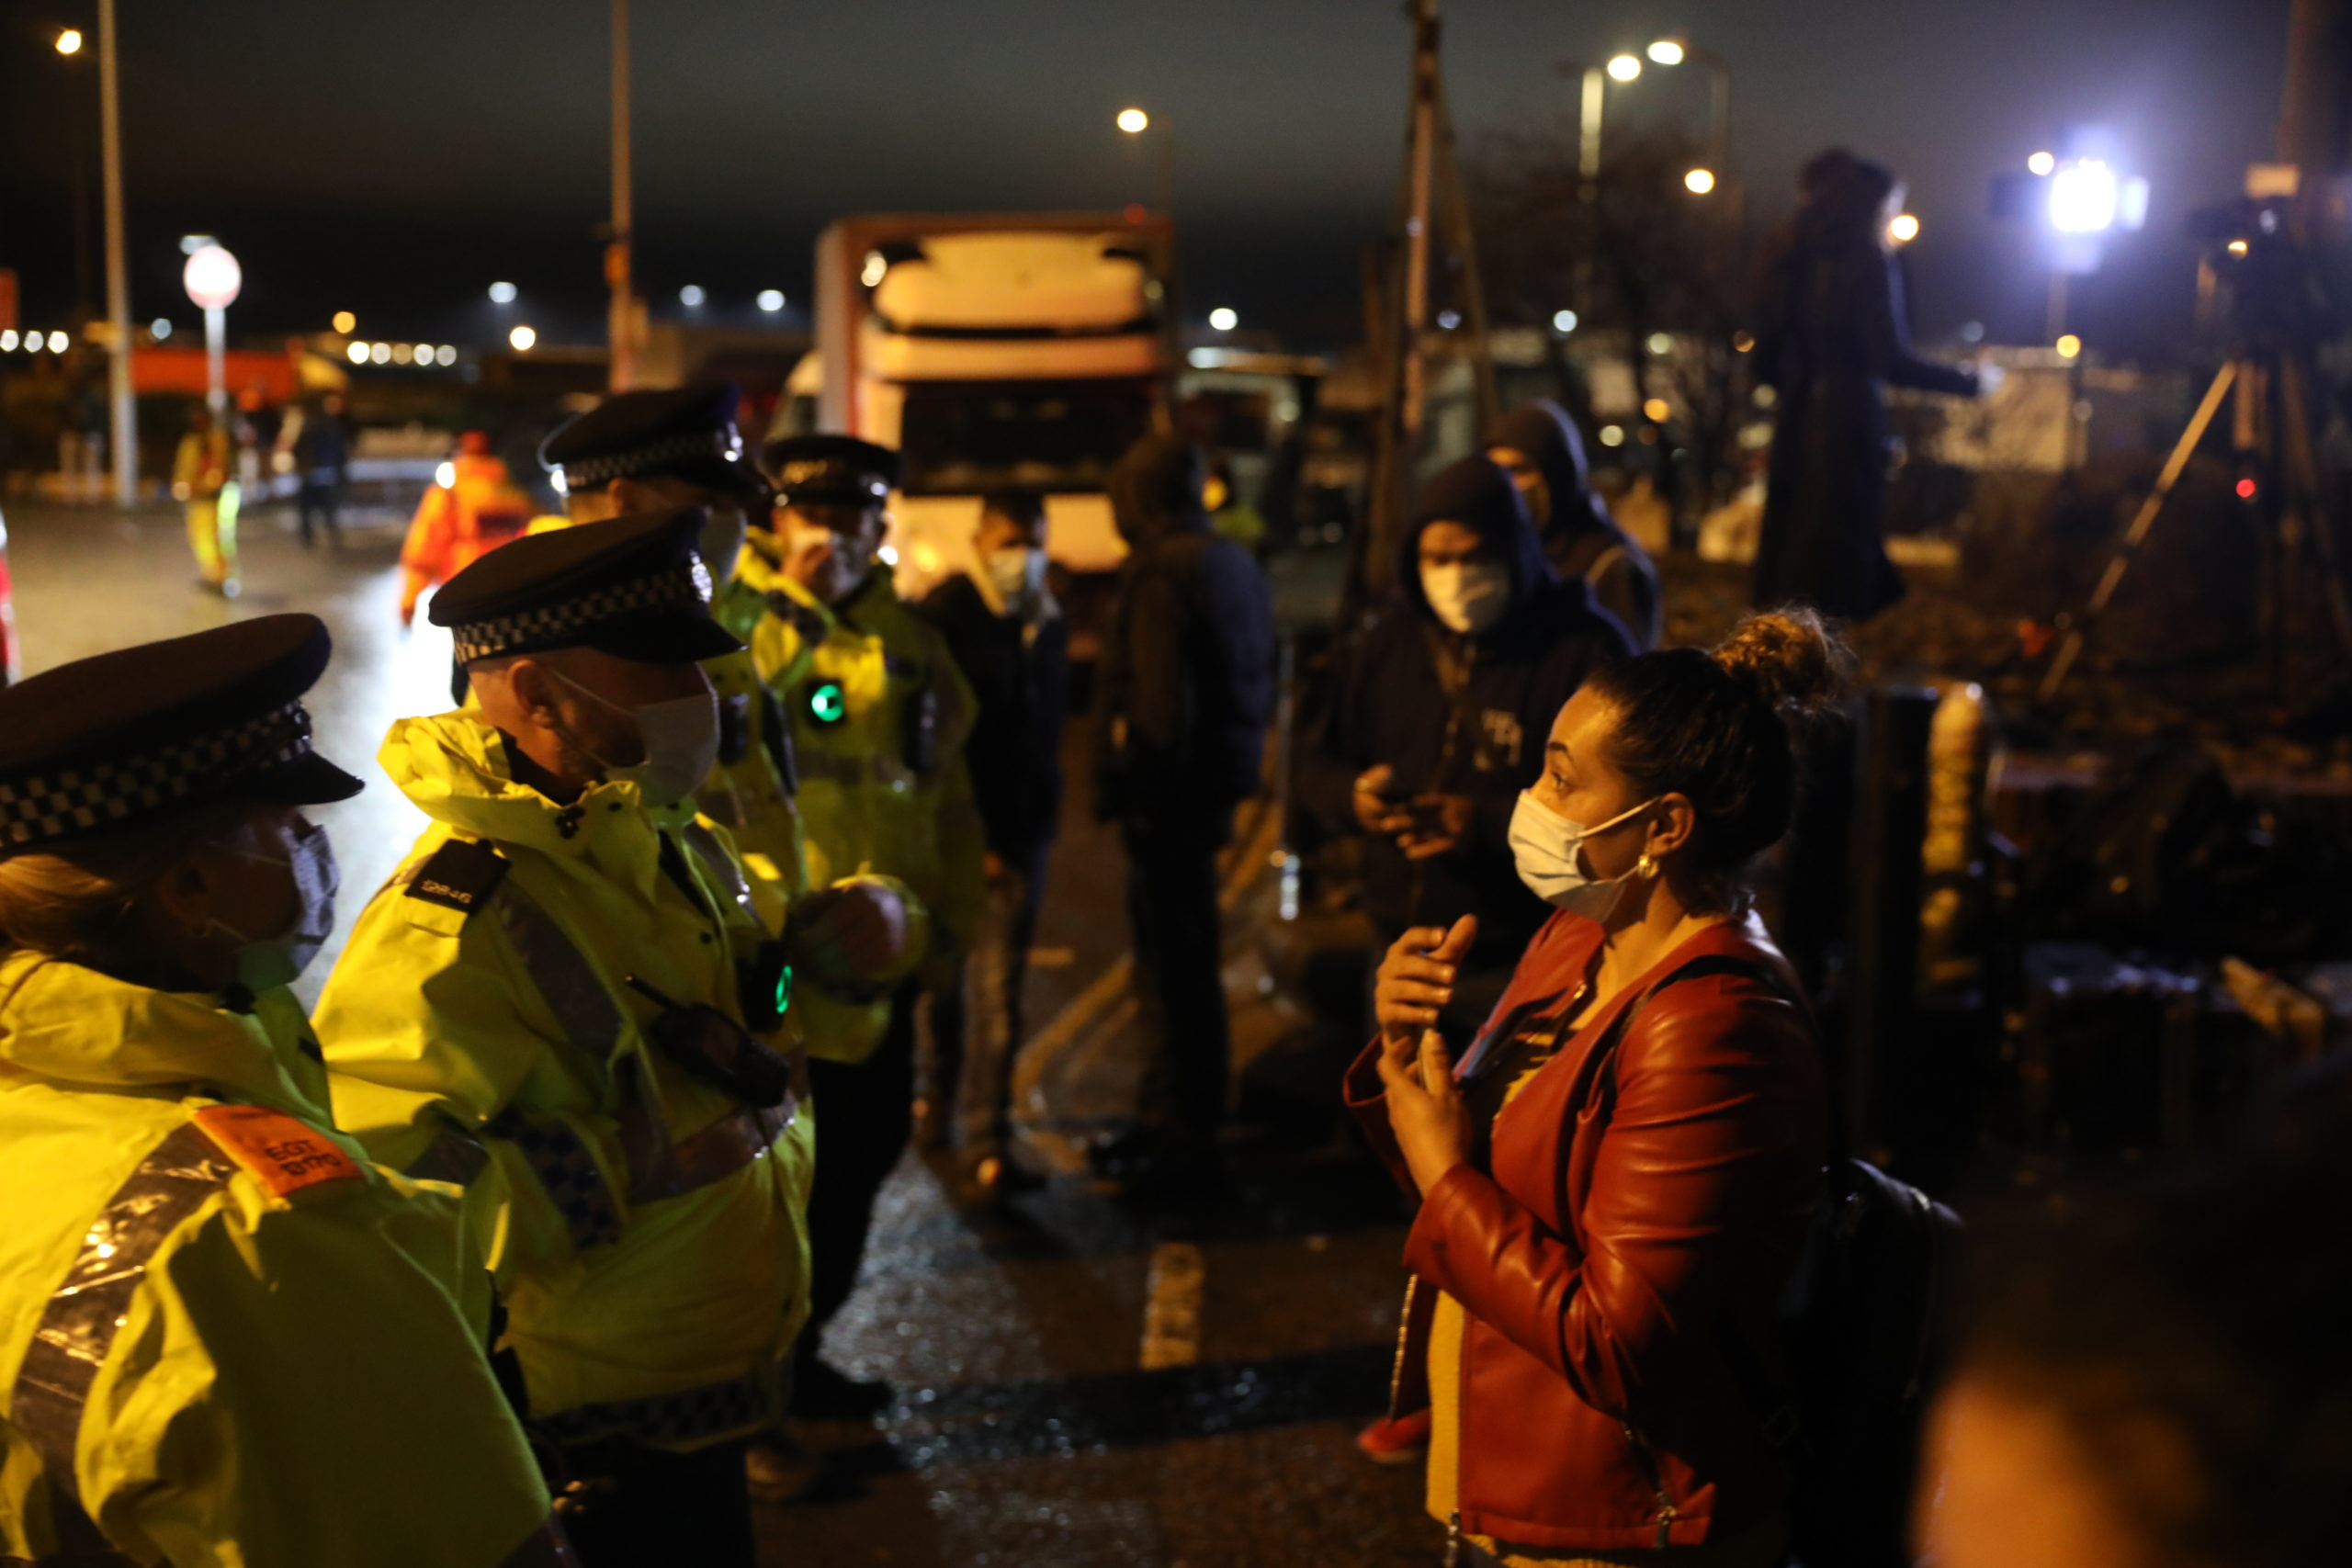 Police officers speak to drivers who seek to travel to France at the Port of Dover on Wednesday in Dover, United Kingdom. (Dan Kitwood/Getty Images)